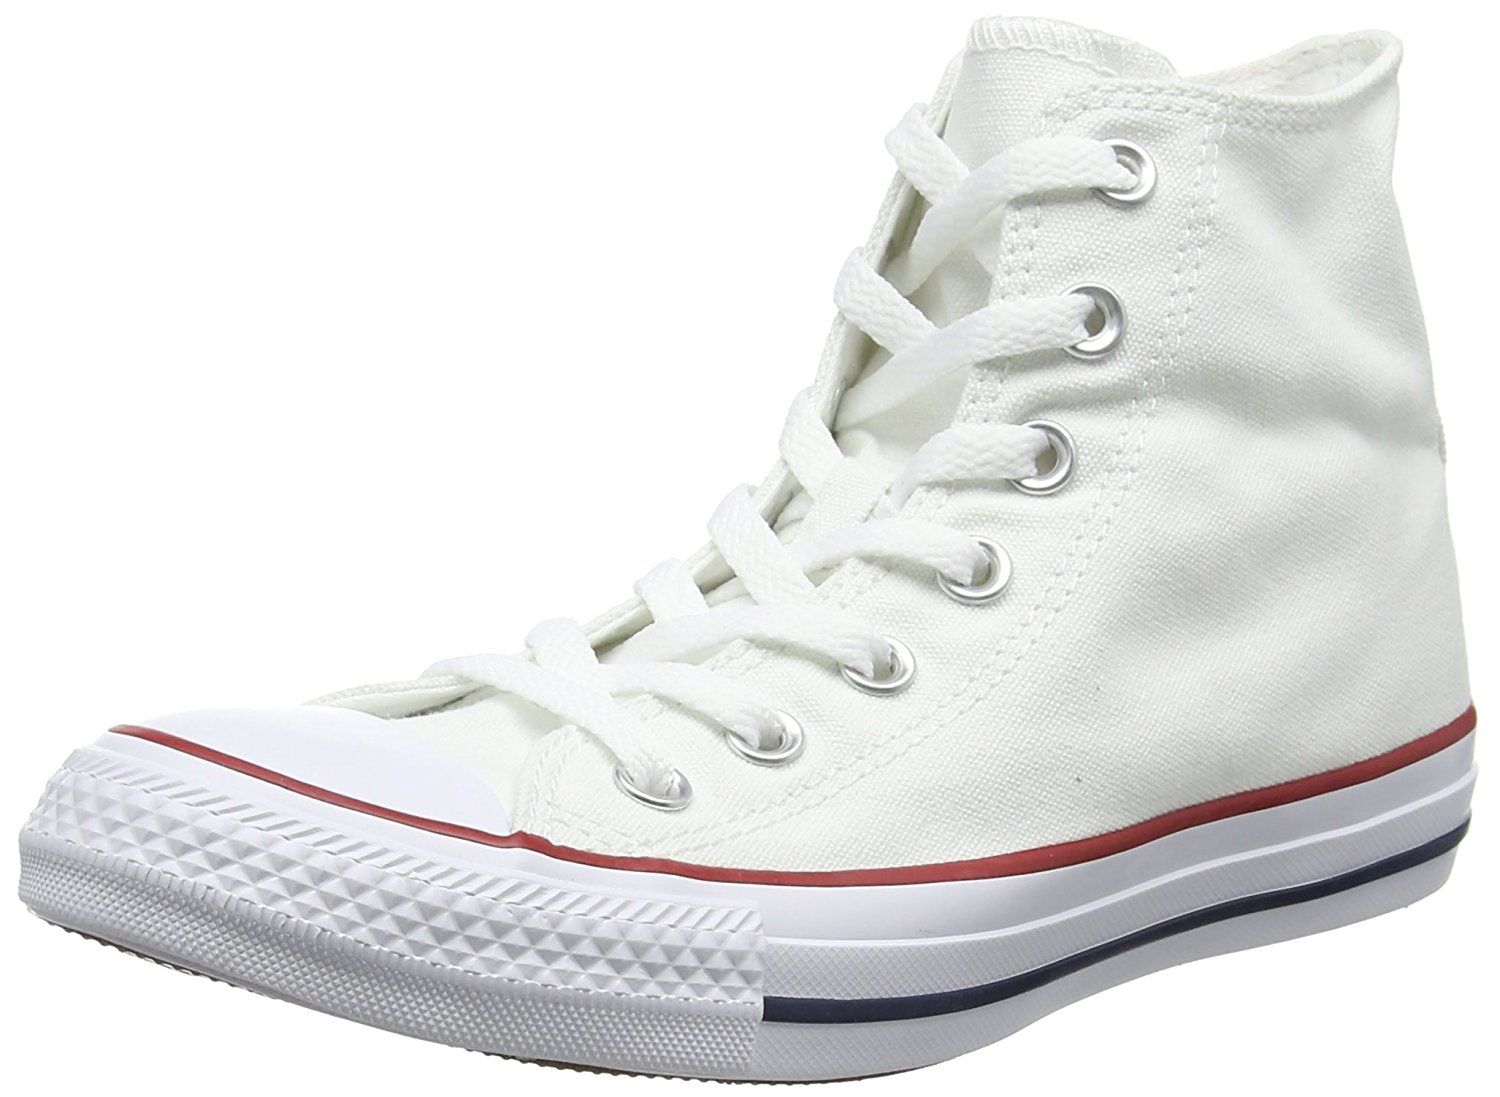 Converse Womens W7650 Fabric Hight Top Lace Up Basketball Shoes White Size 6.0